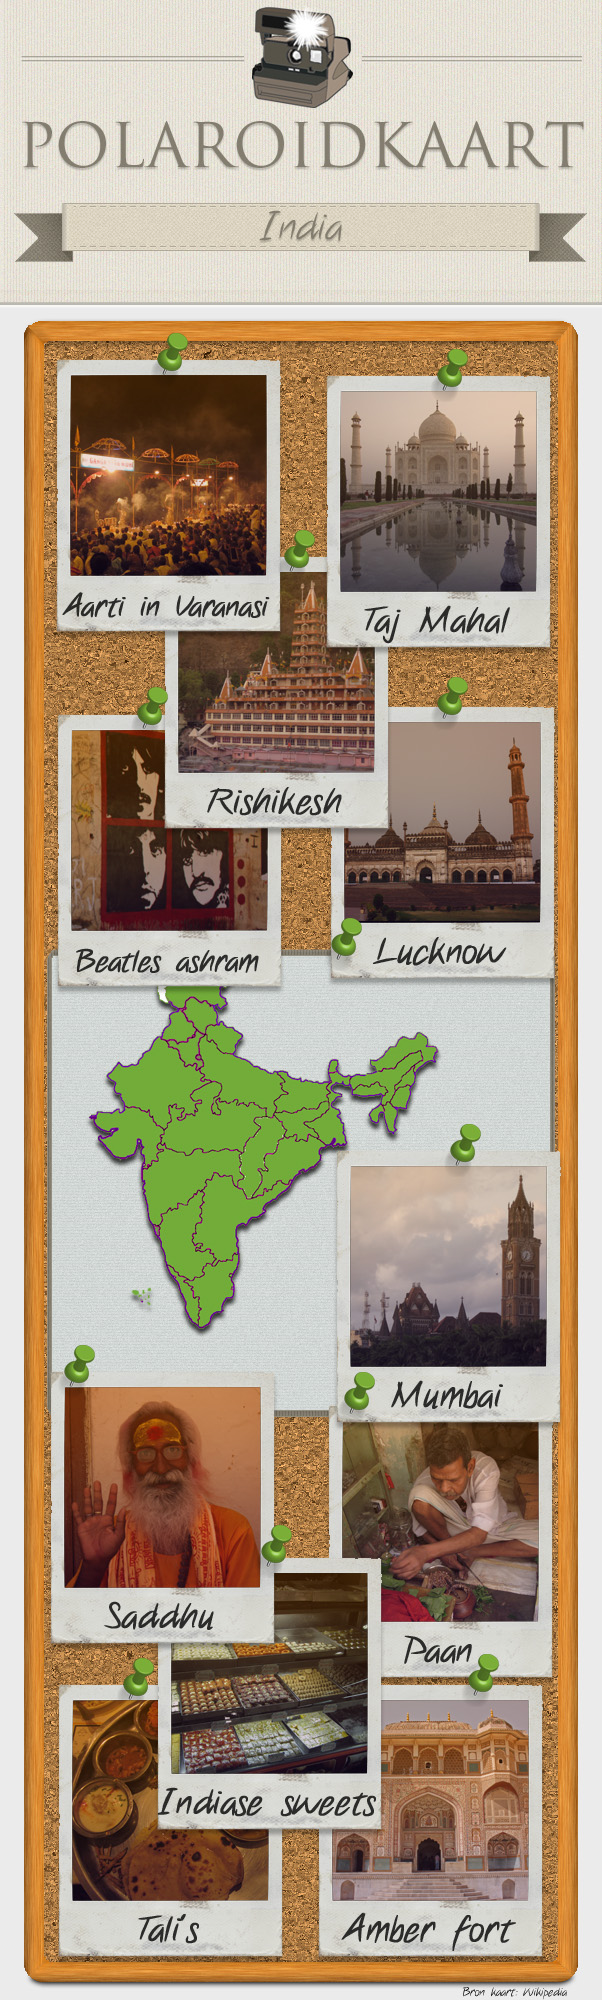 Polaroidkaart India